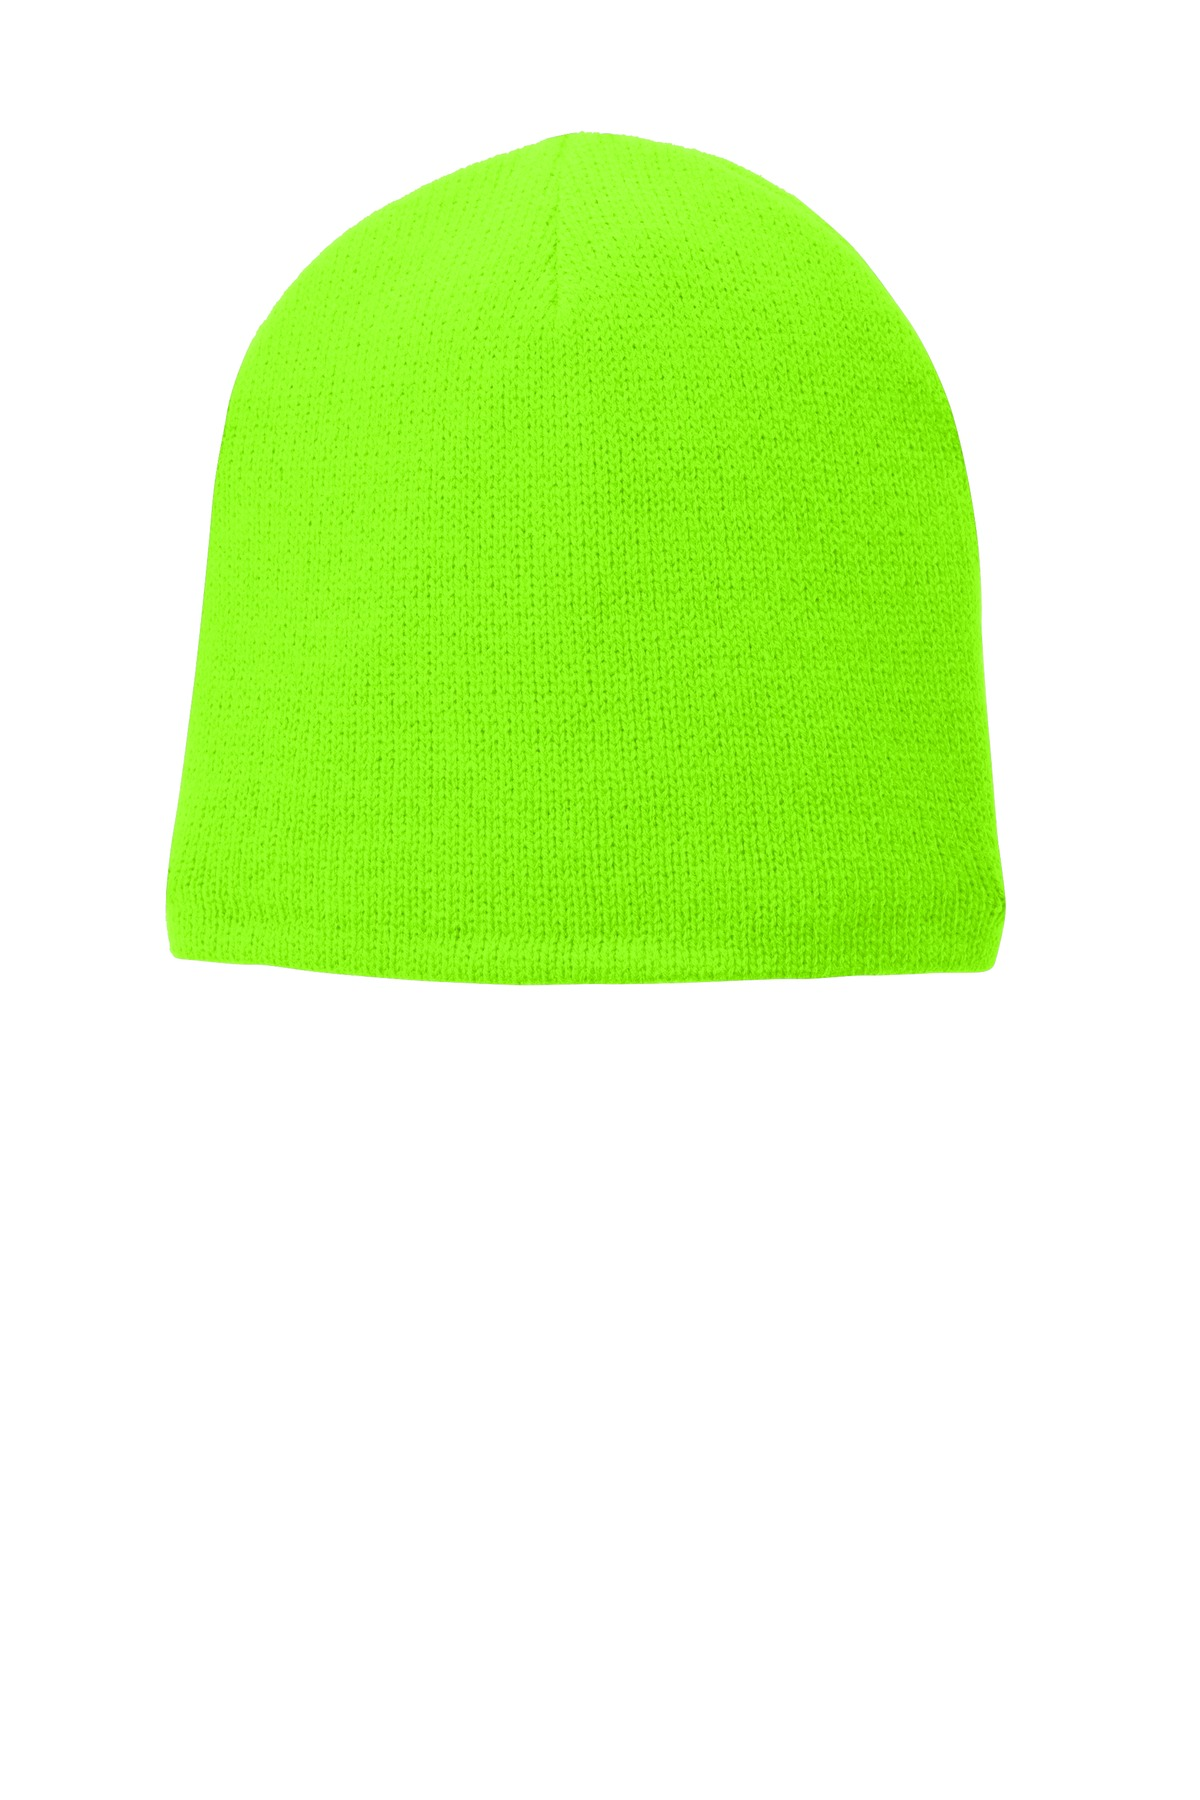 Port & Company ®  Fleece-Lined Beanie Cap. CP91L - Neon Green